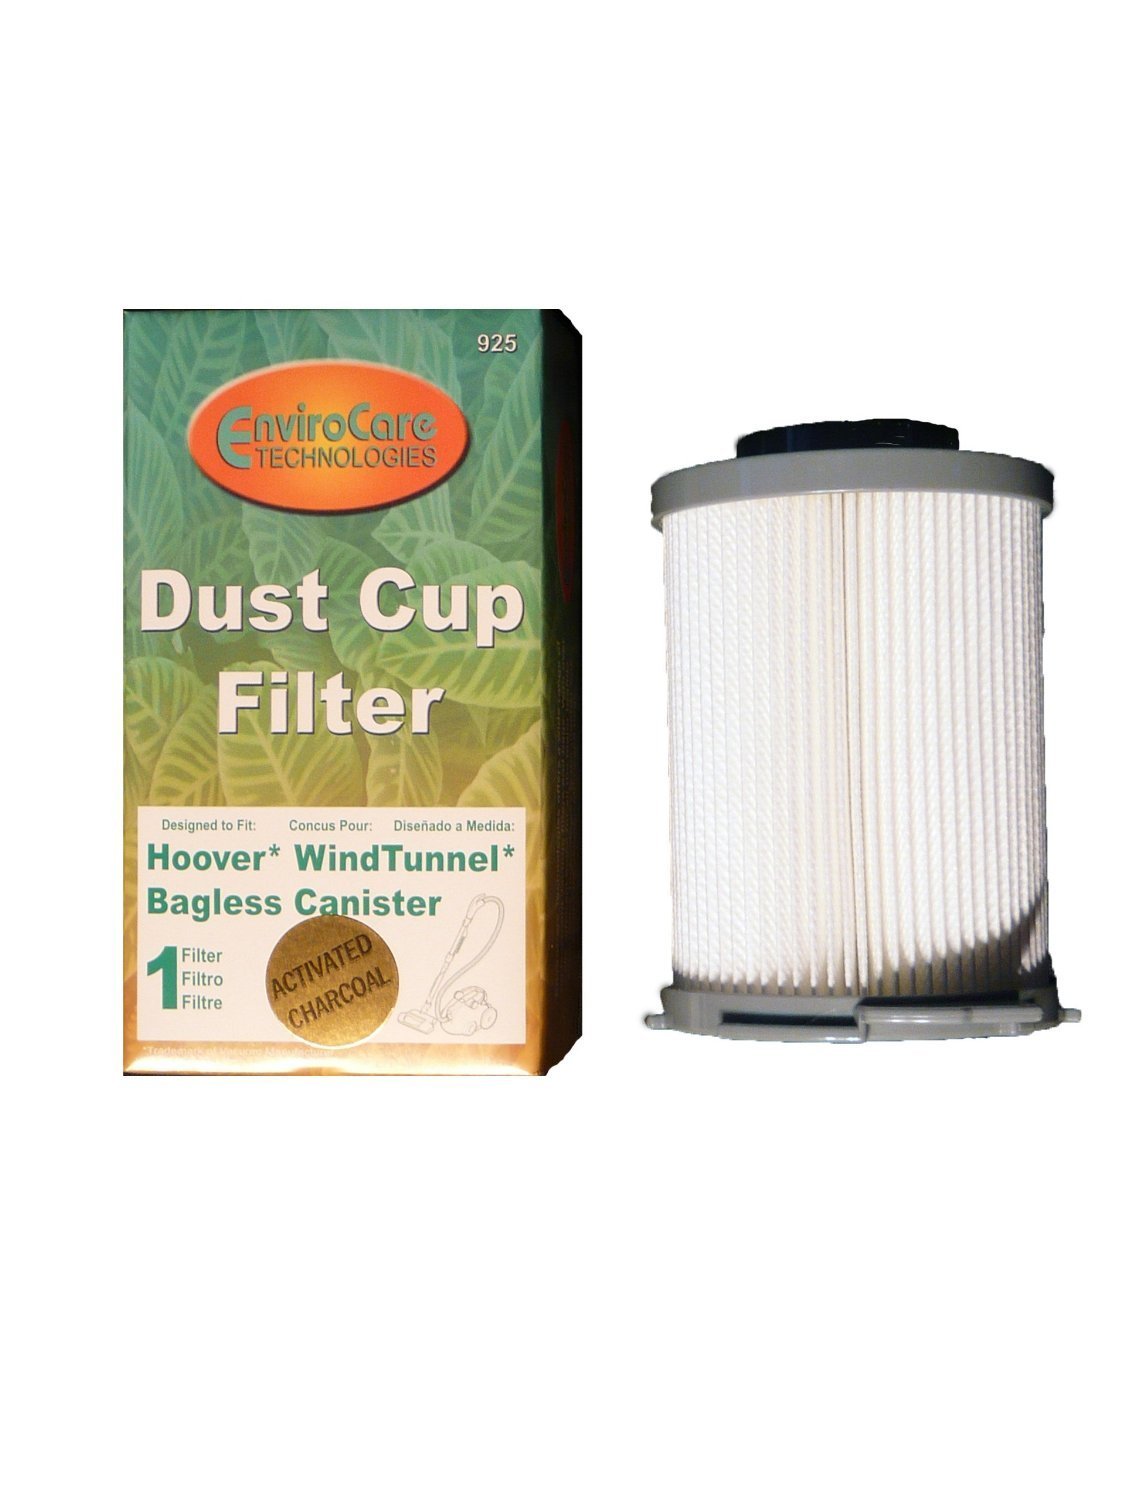 (2) Hoover Bagless WindTunnel Canister Pleated HEPA Vacuum Filter, Windtunnel Vacuum Cleaners, 59134033, HR-1845, S3755, S3765, S3765040 and S3755080, S3755-045, S3765-040. (Part #925) 71RcPobj2nL